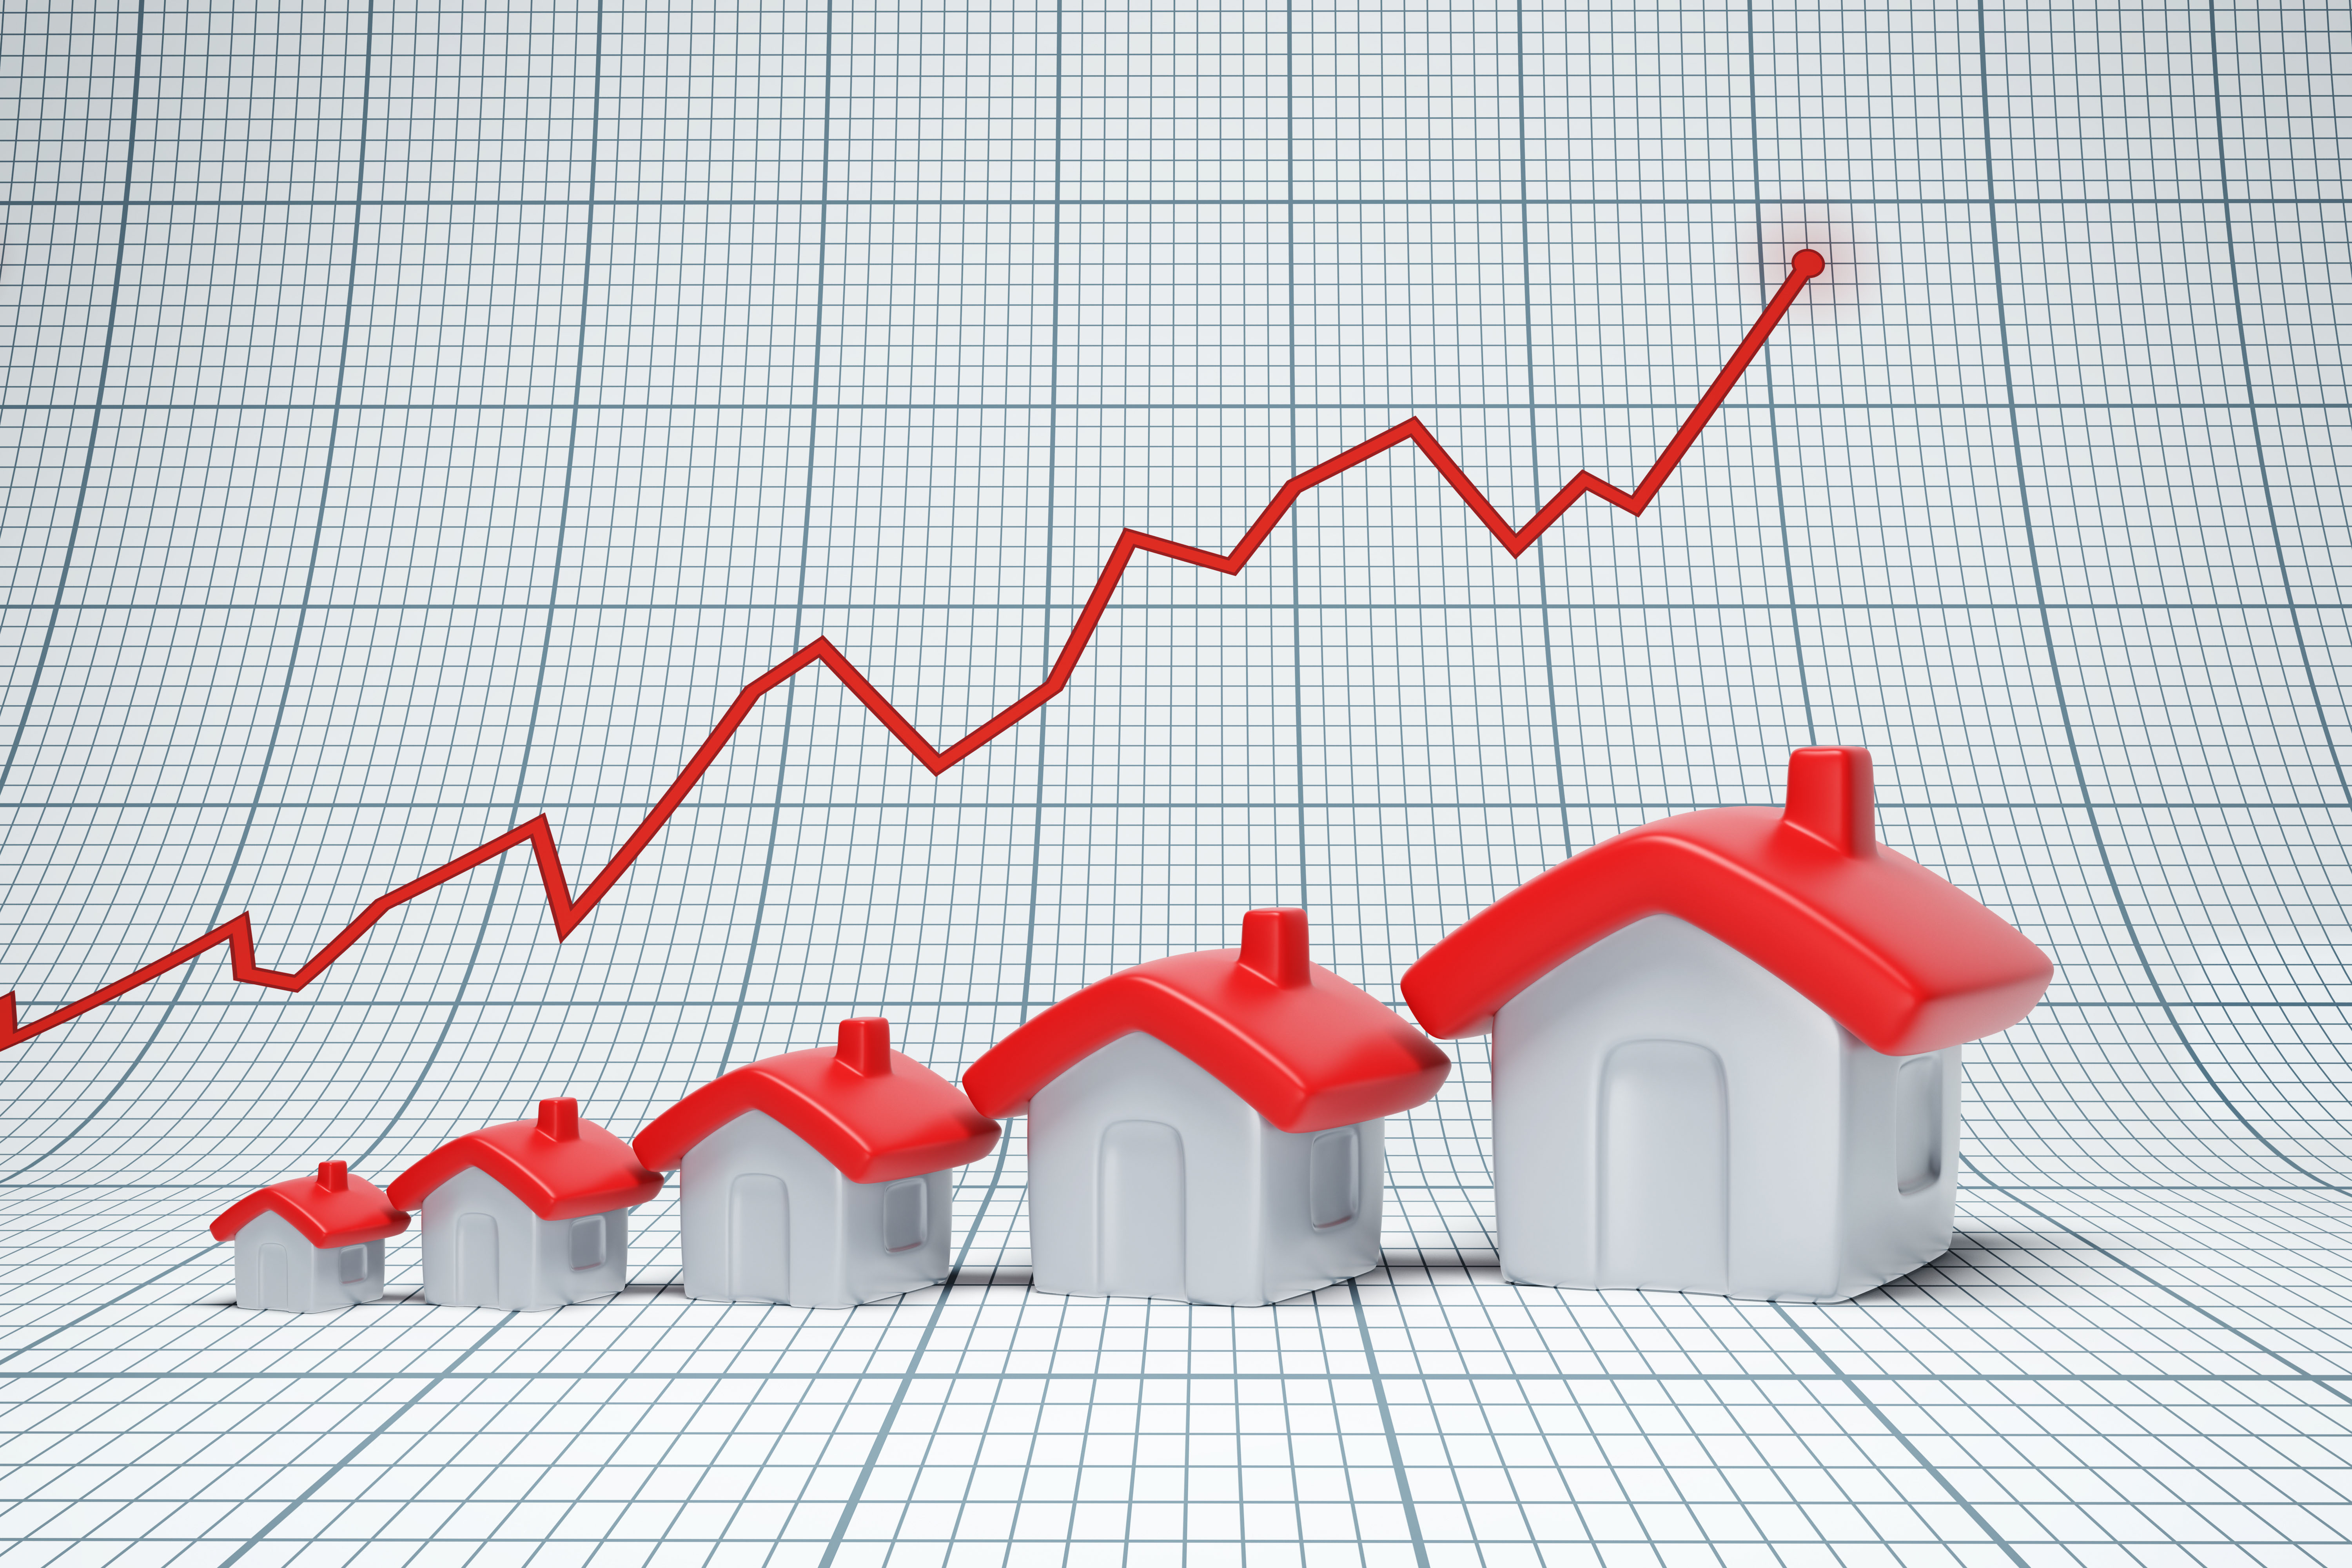 What the HUD's Interest Rate Hikes Mean for Homeowners & Would-Be Buyers